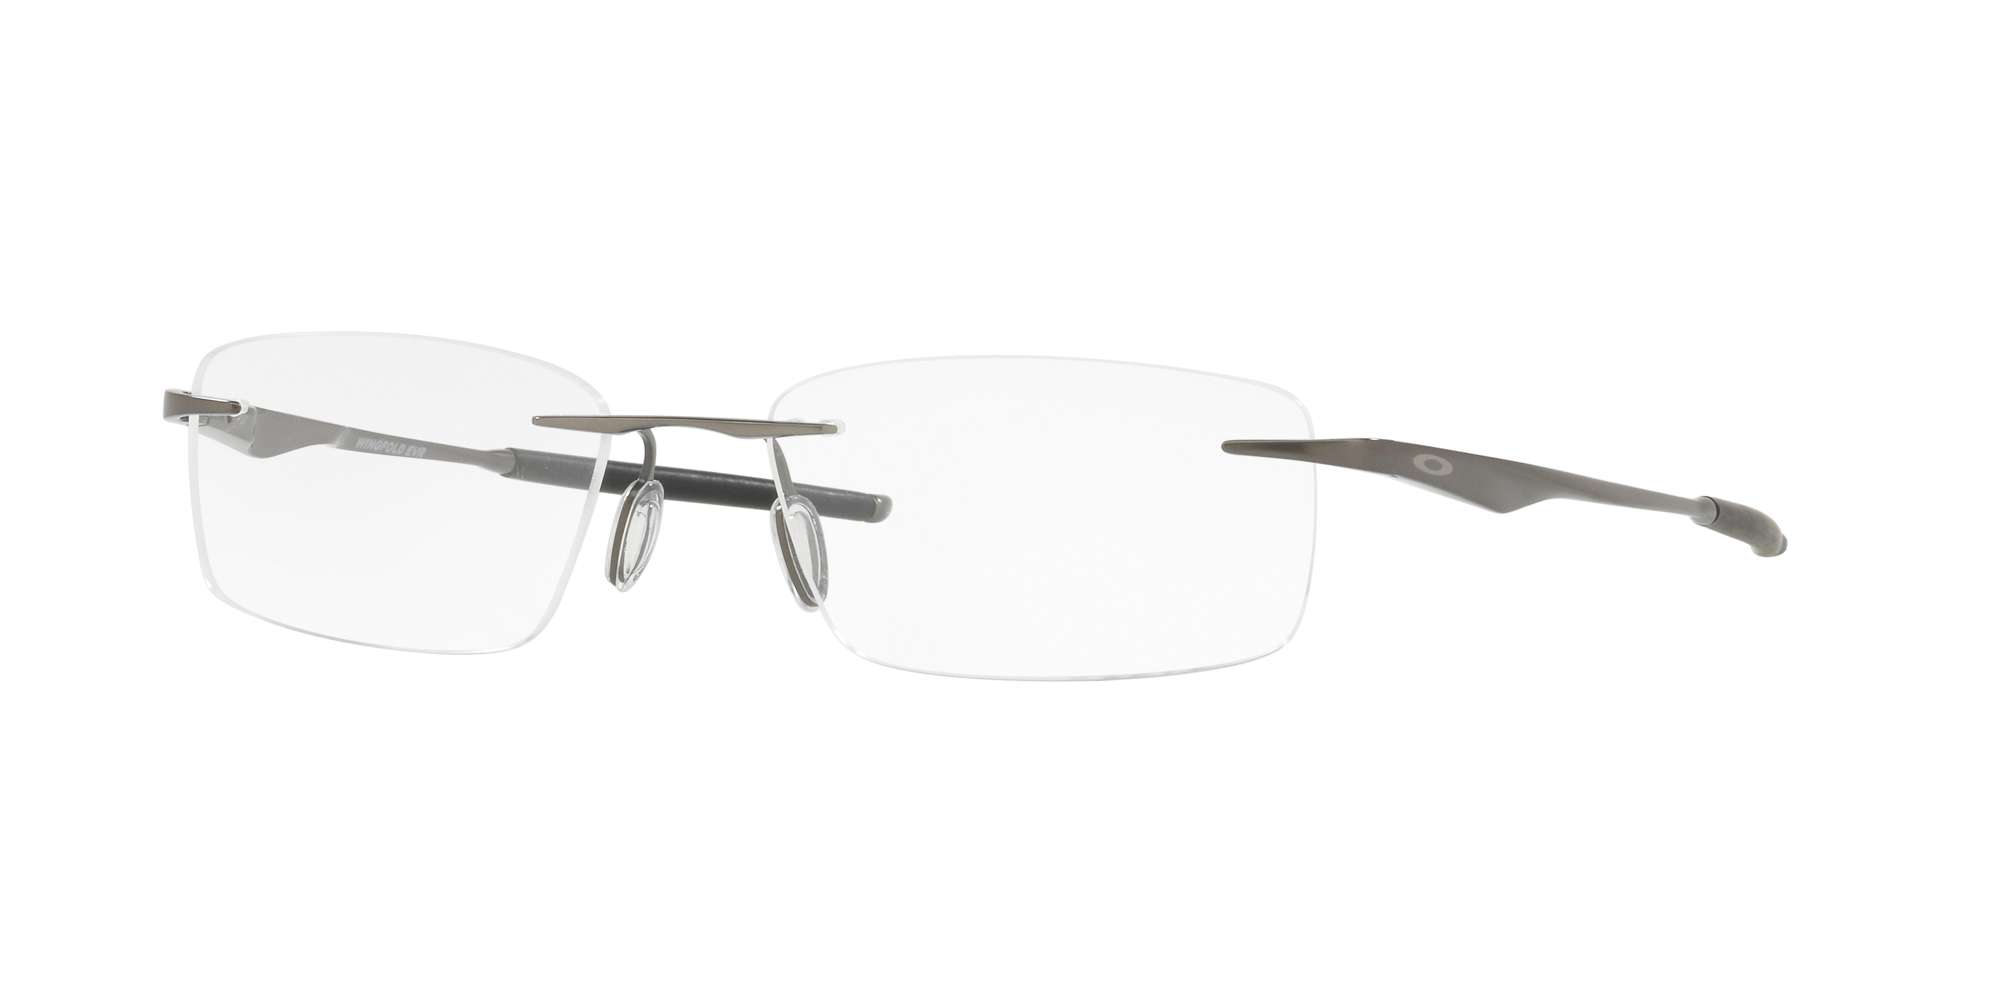 CEMENT / CLEAR lenses